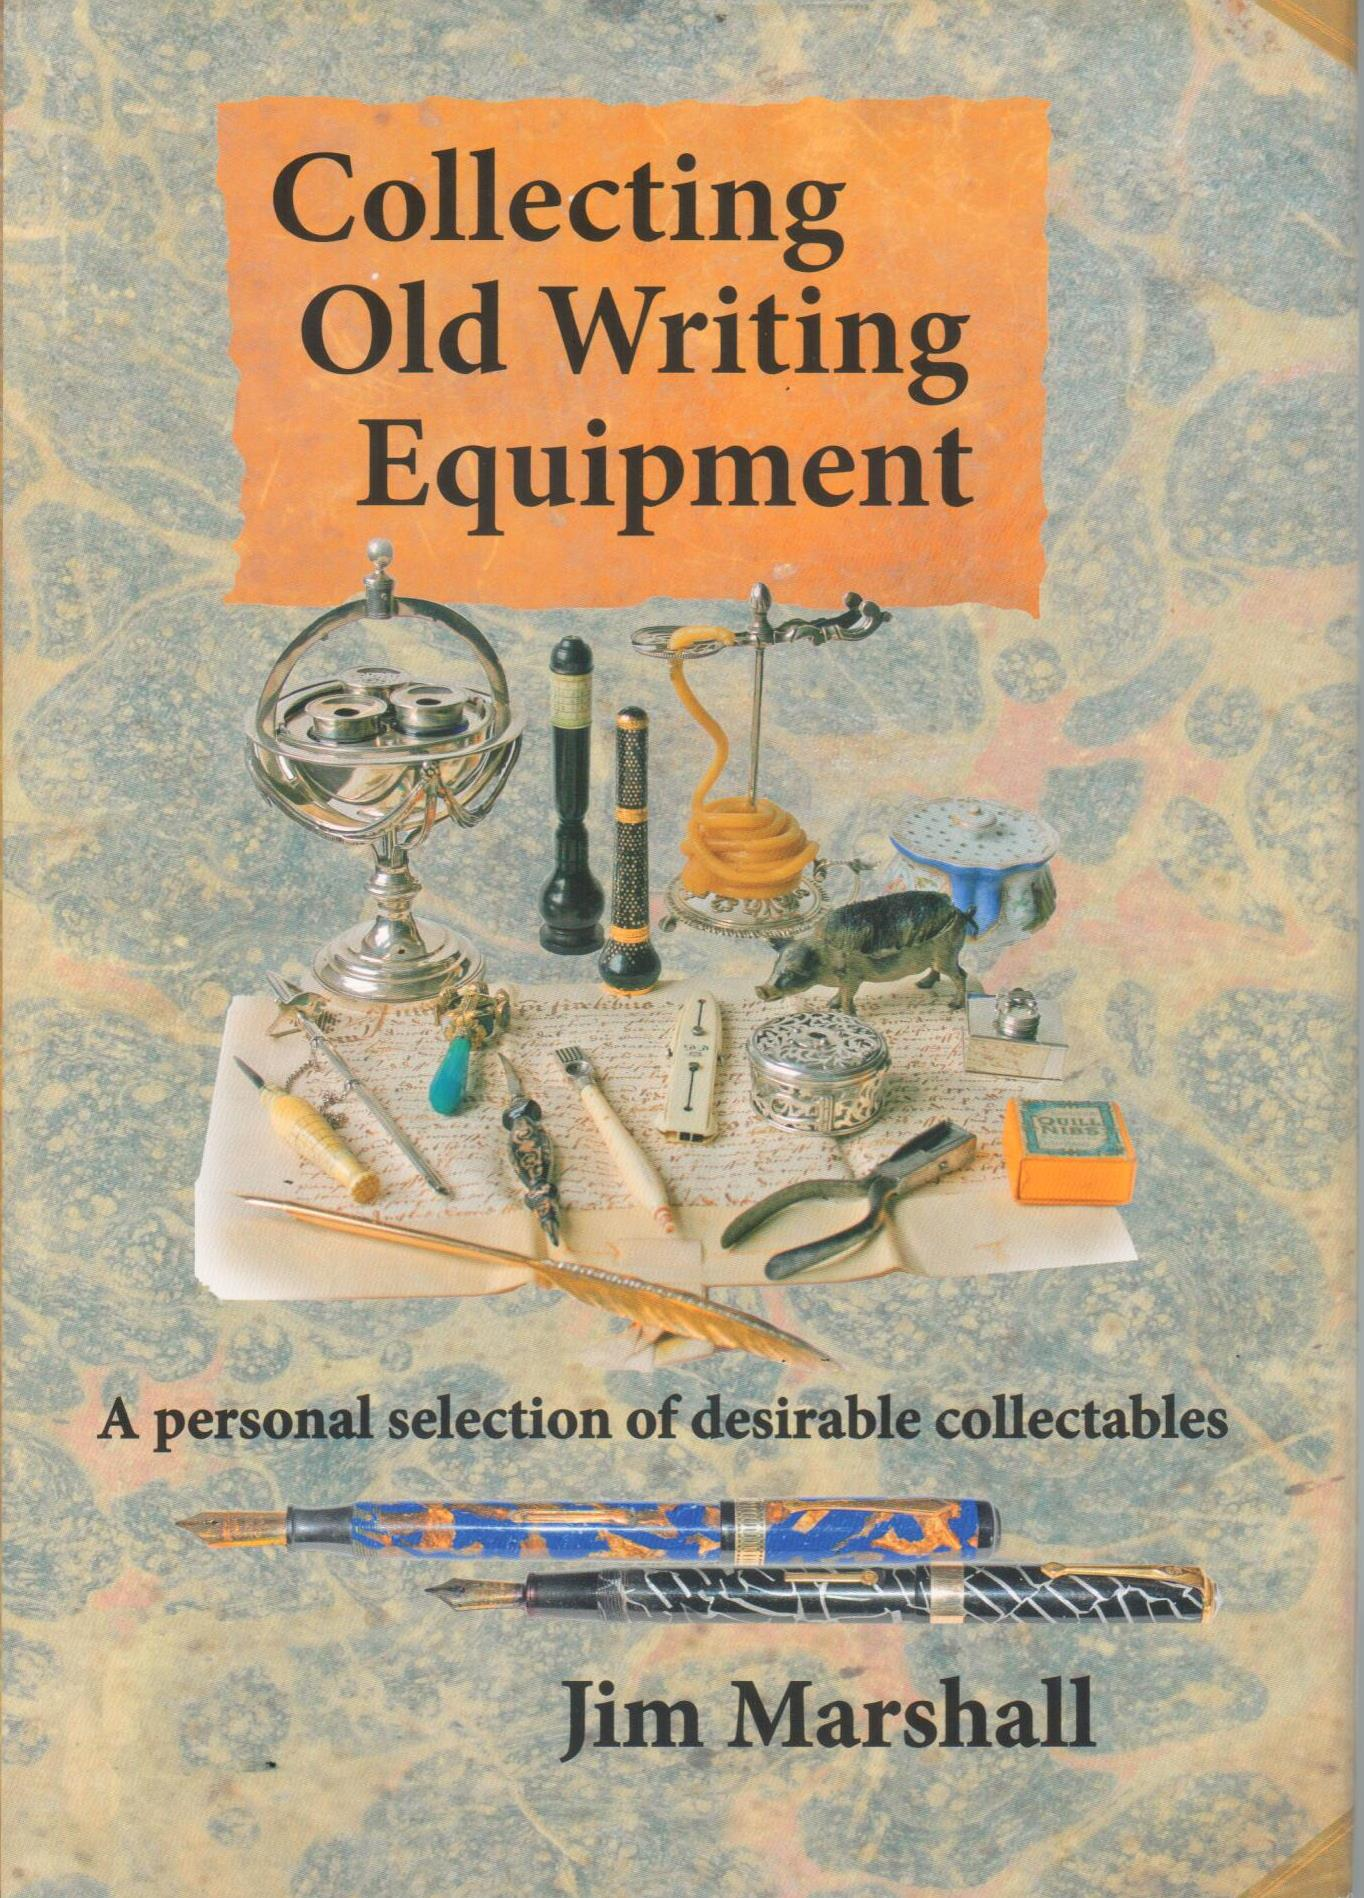 Collecting Old Writing Equipment